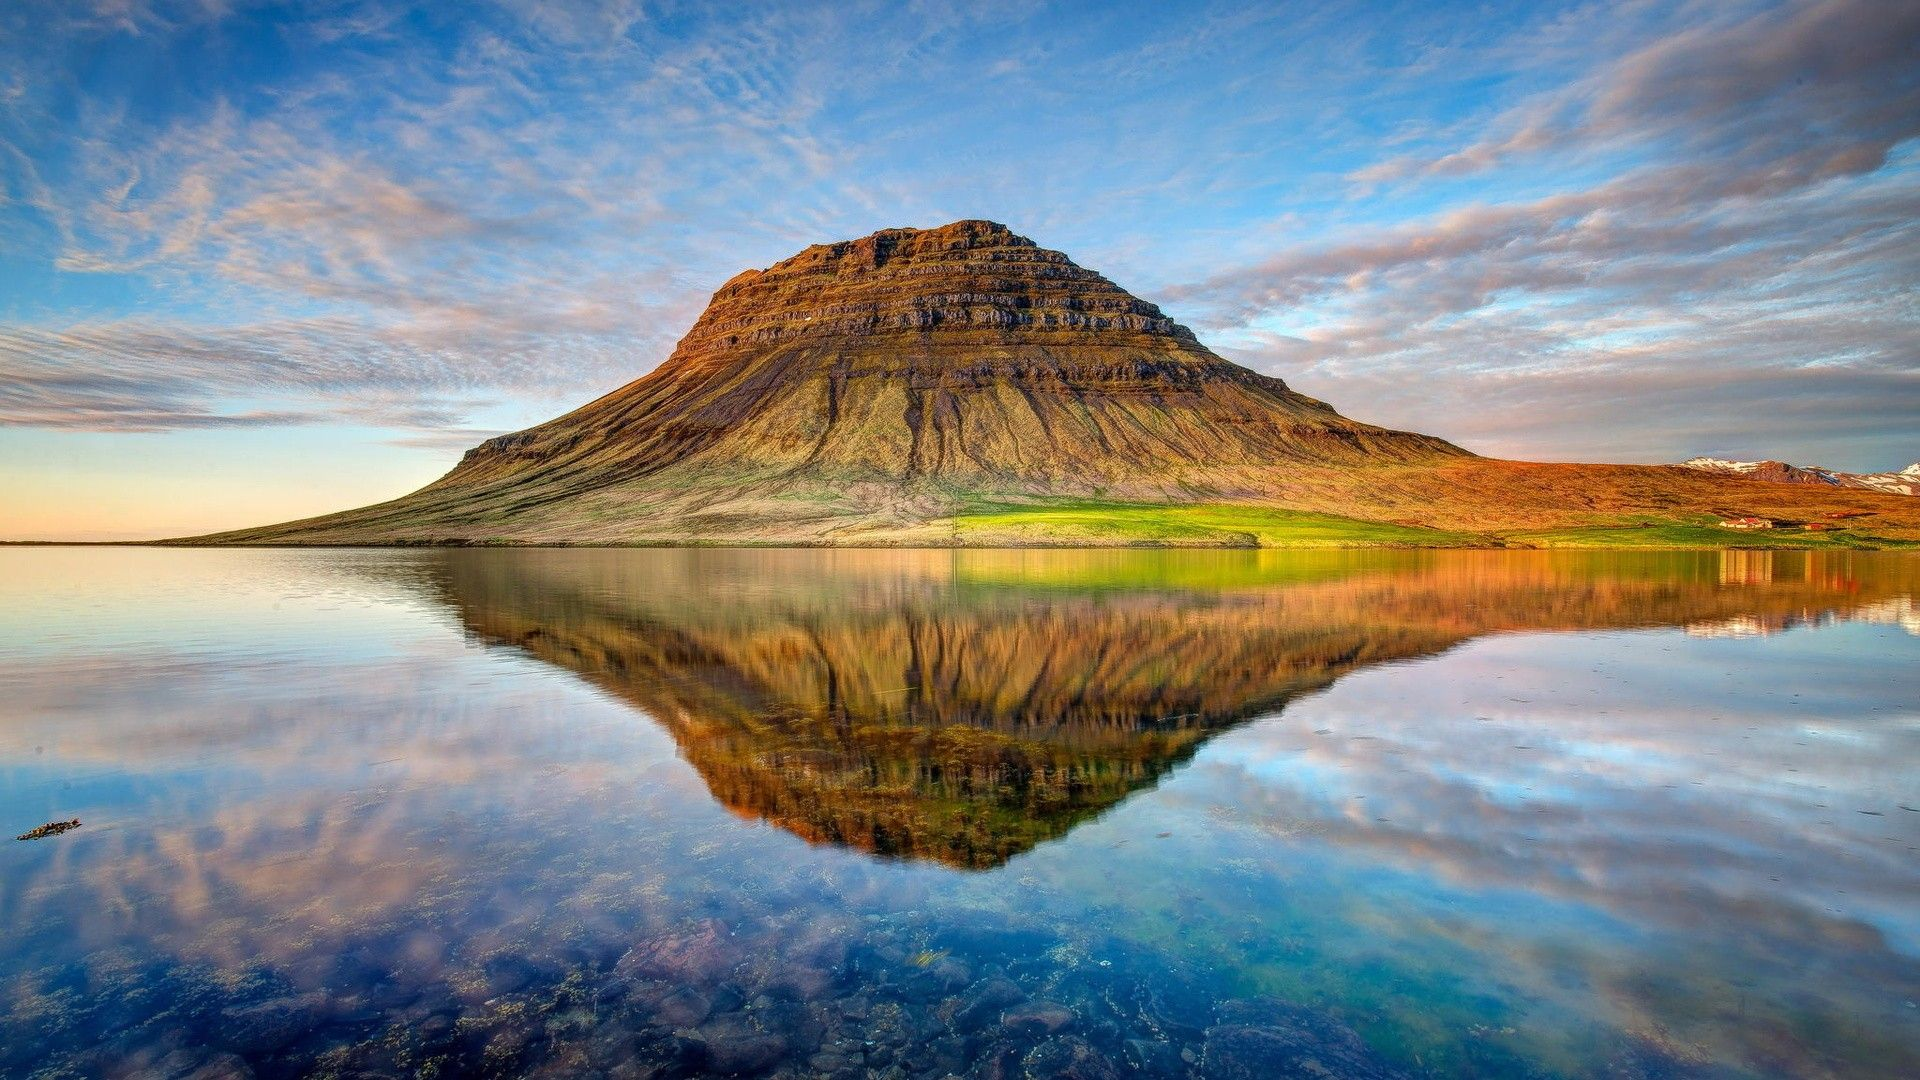 Iceland hd wallpaper 1080p for pc